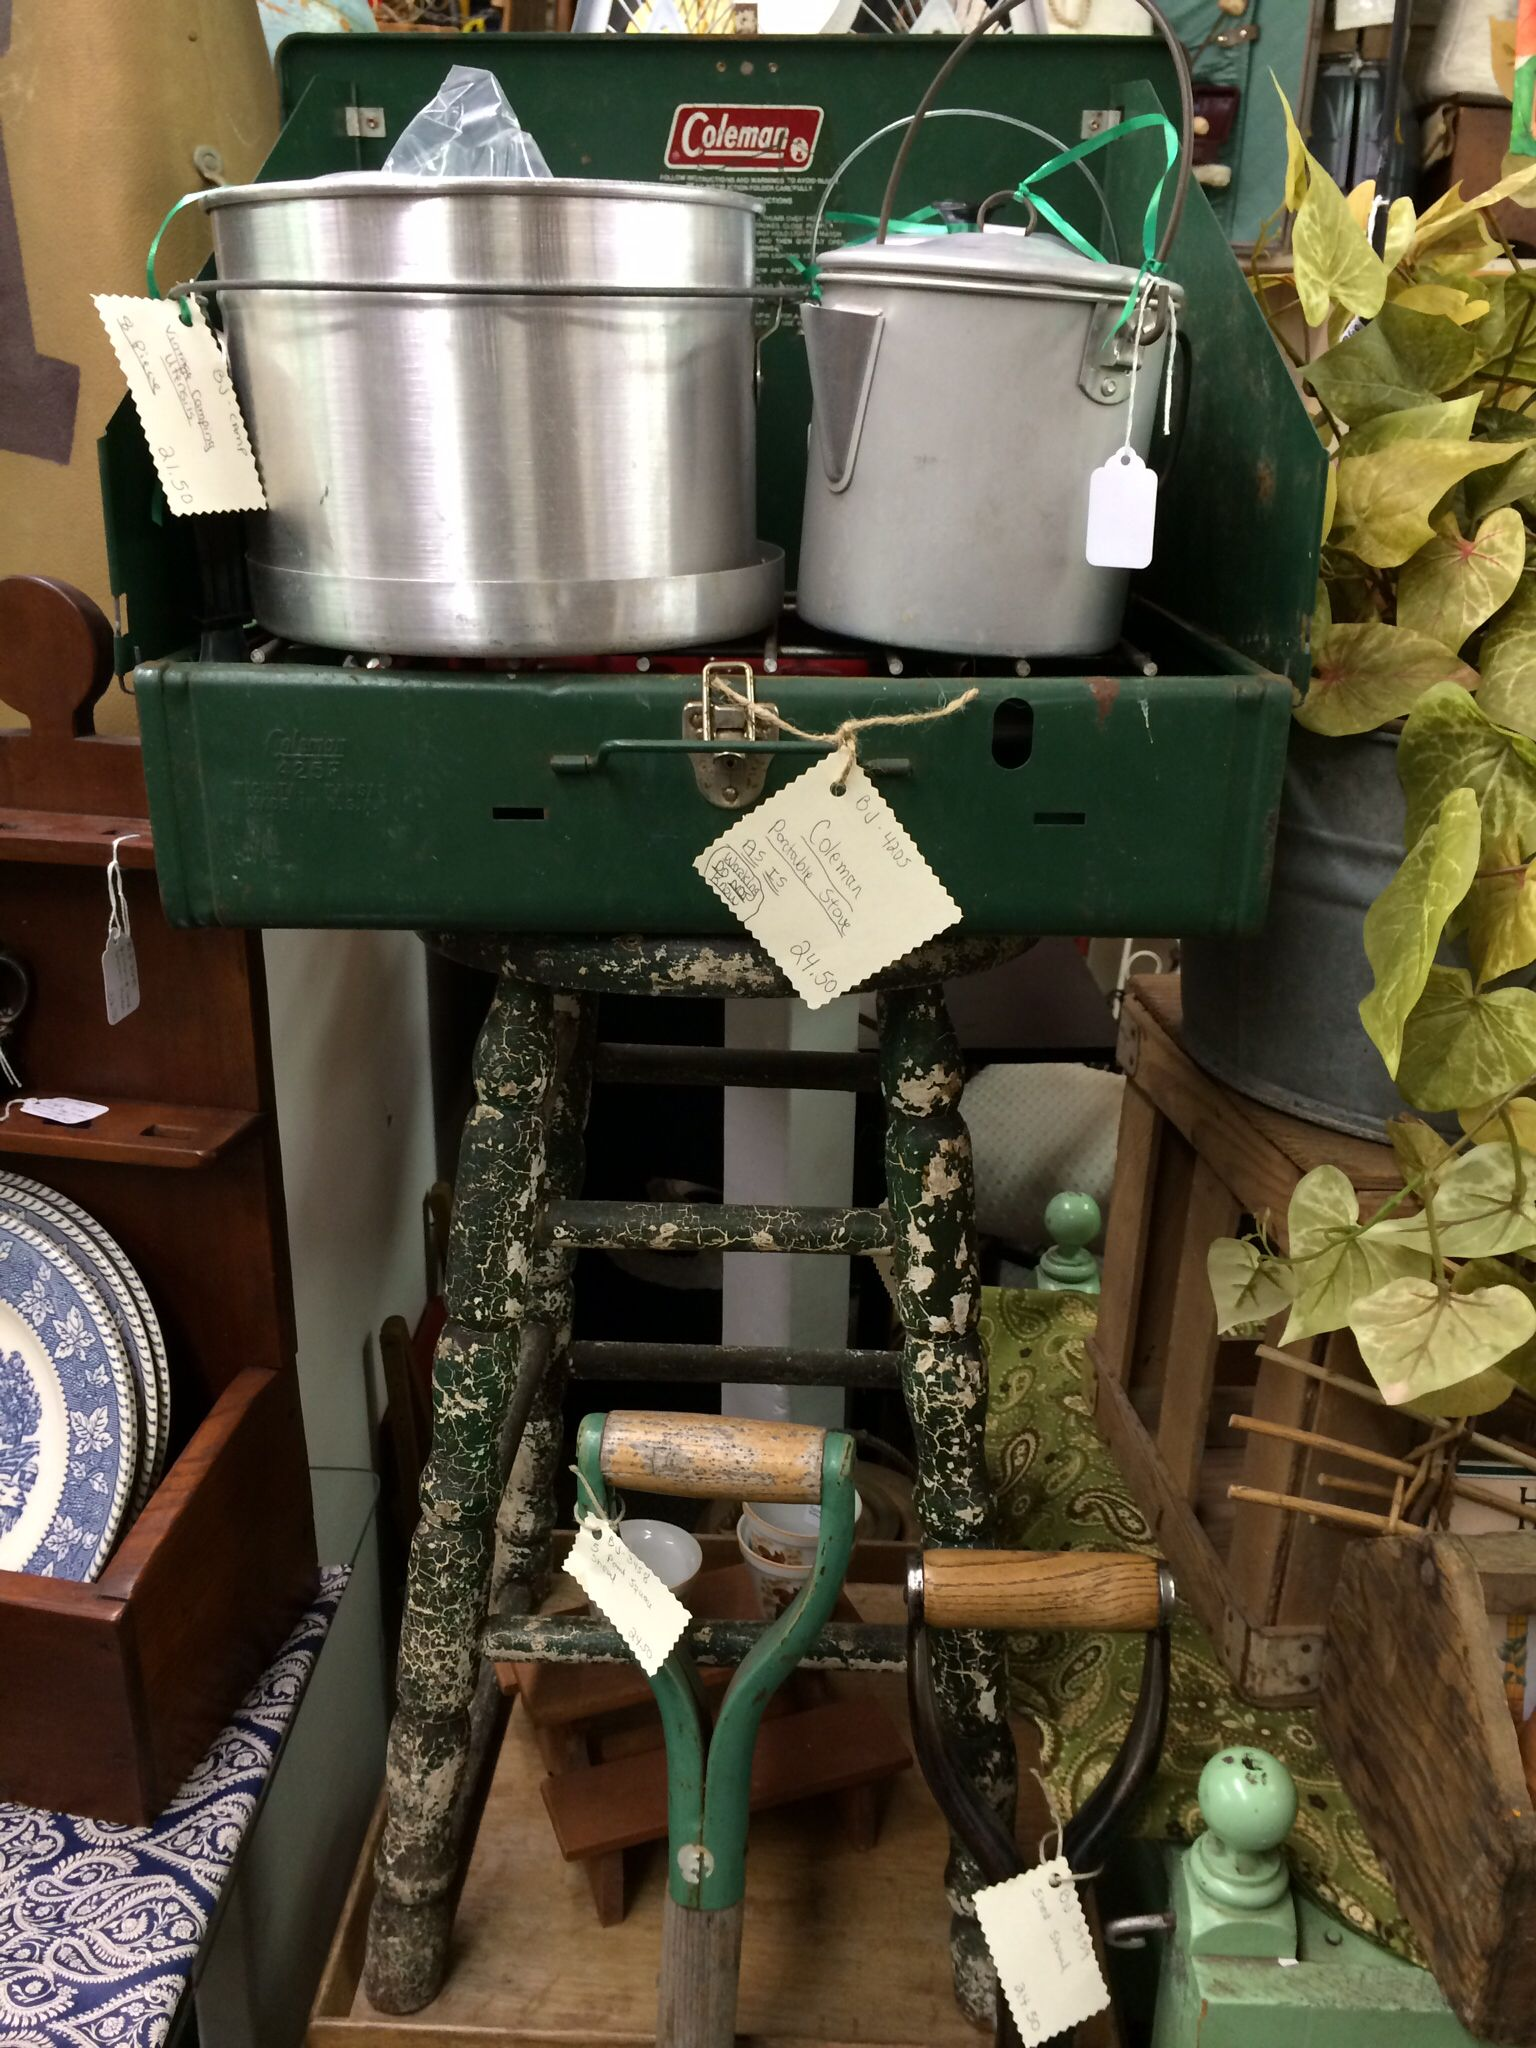 Vintage Camping Gear | Booth Displays at Marketplace ...